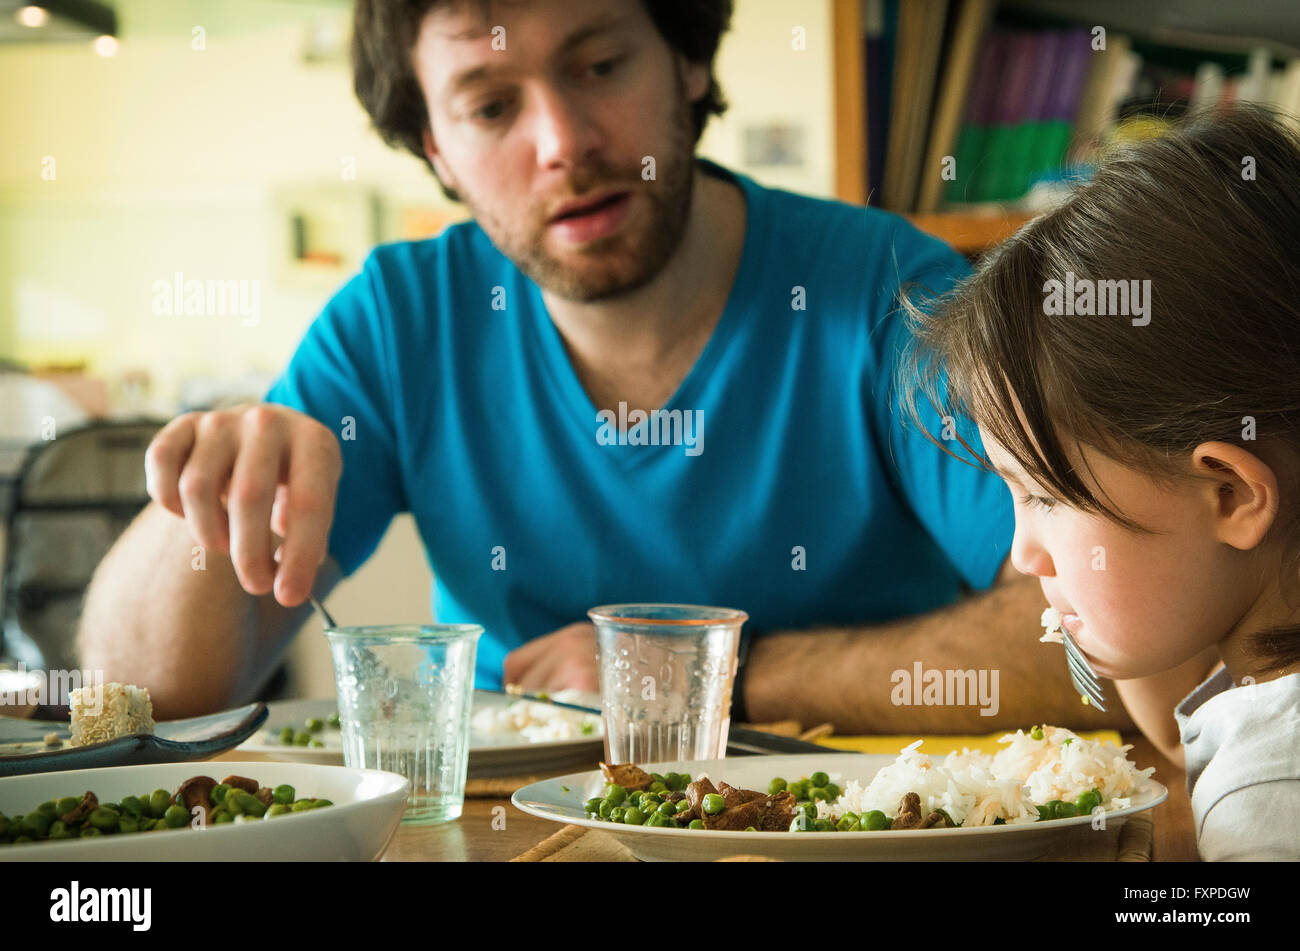 Little girl refusing to eat her dinner - Stock Image